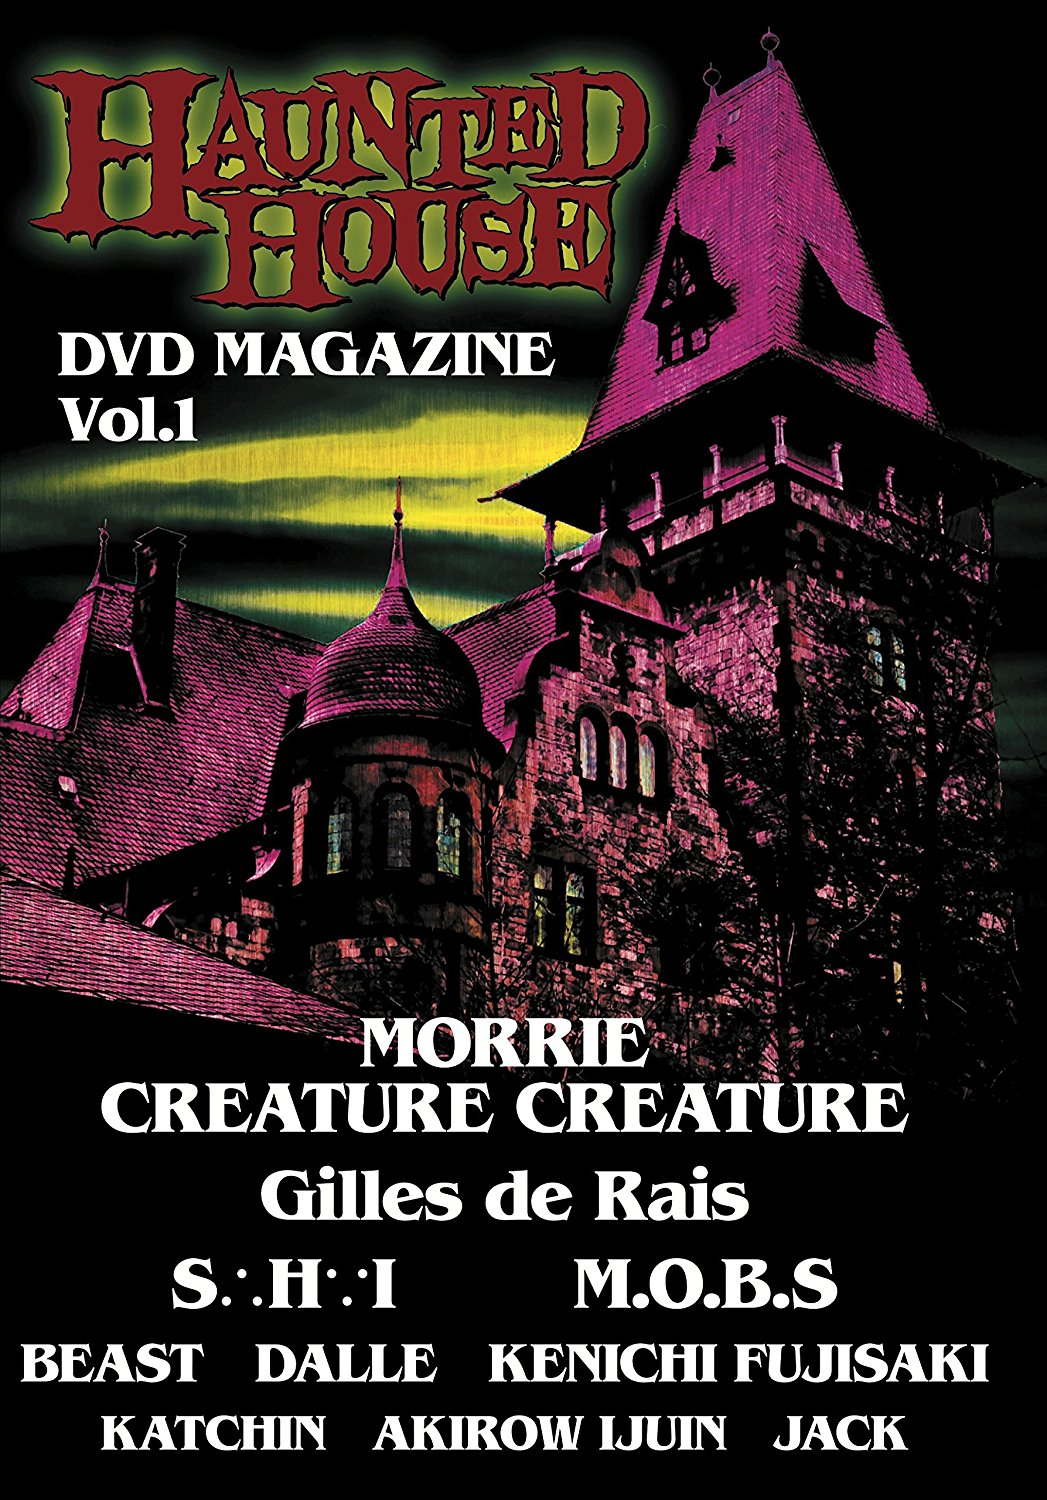 オムニバスハ の DVD HAUNTED HOUSE DVD MAGAZINE Vol.1